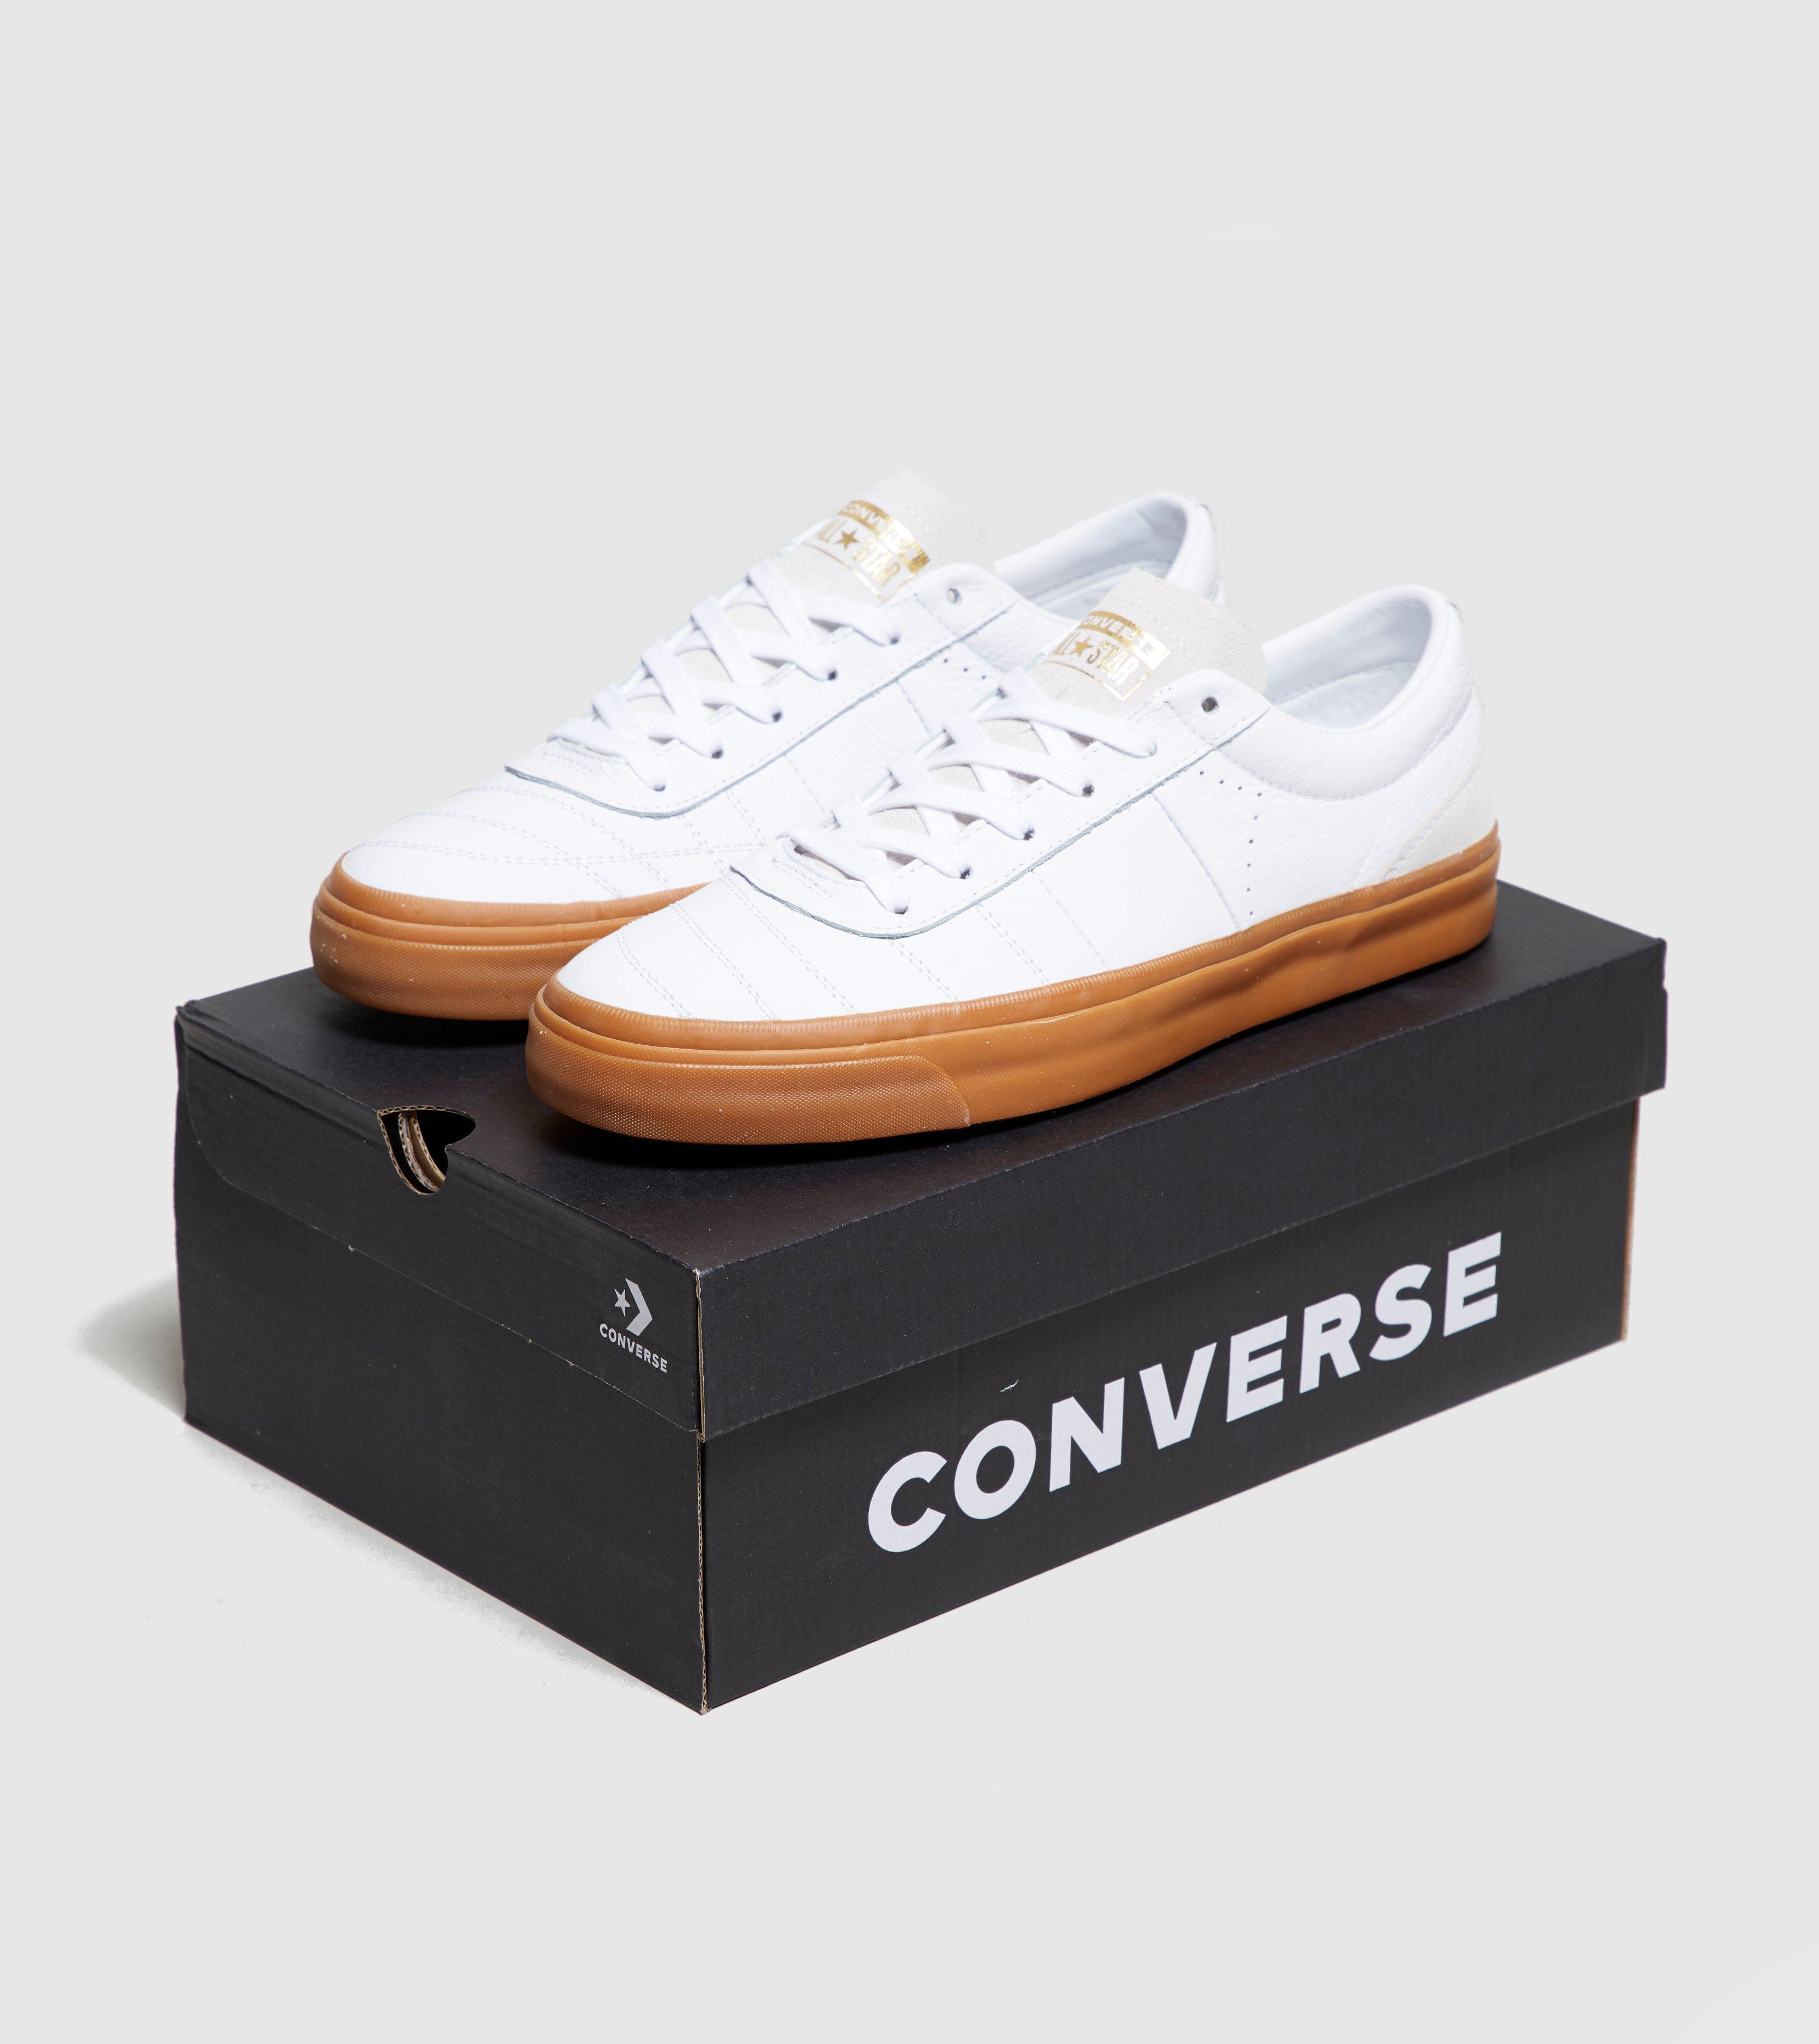 0036ed9572d ... Lyst - Converse One Star Cc in White for Men pretty nice cd4eb 04507  Converse  One Star Vintage Suede Low ...